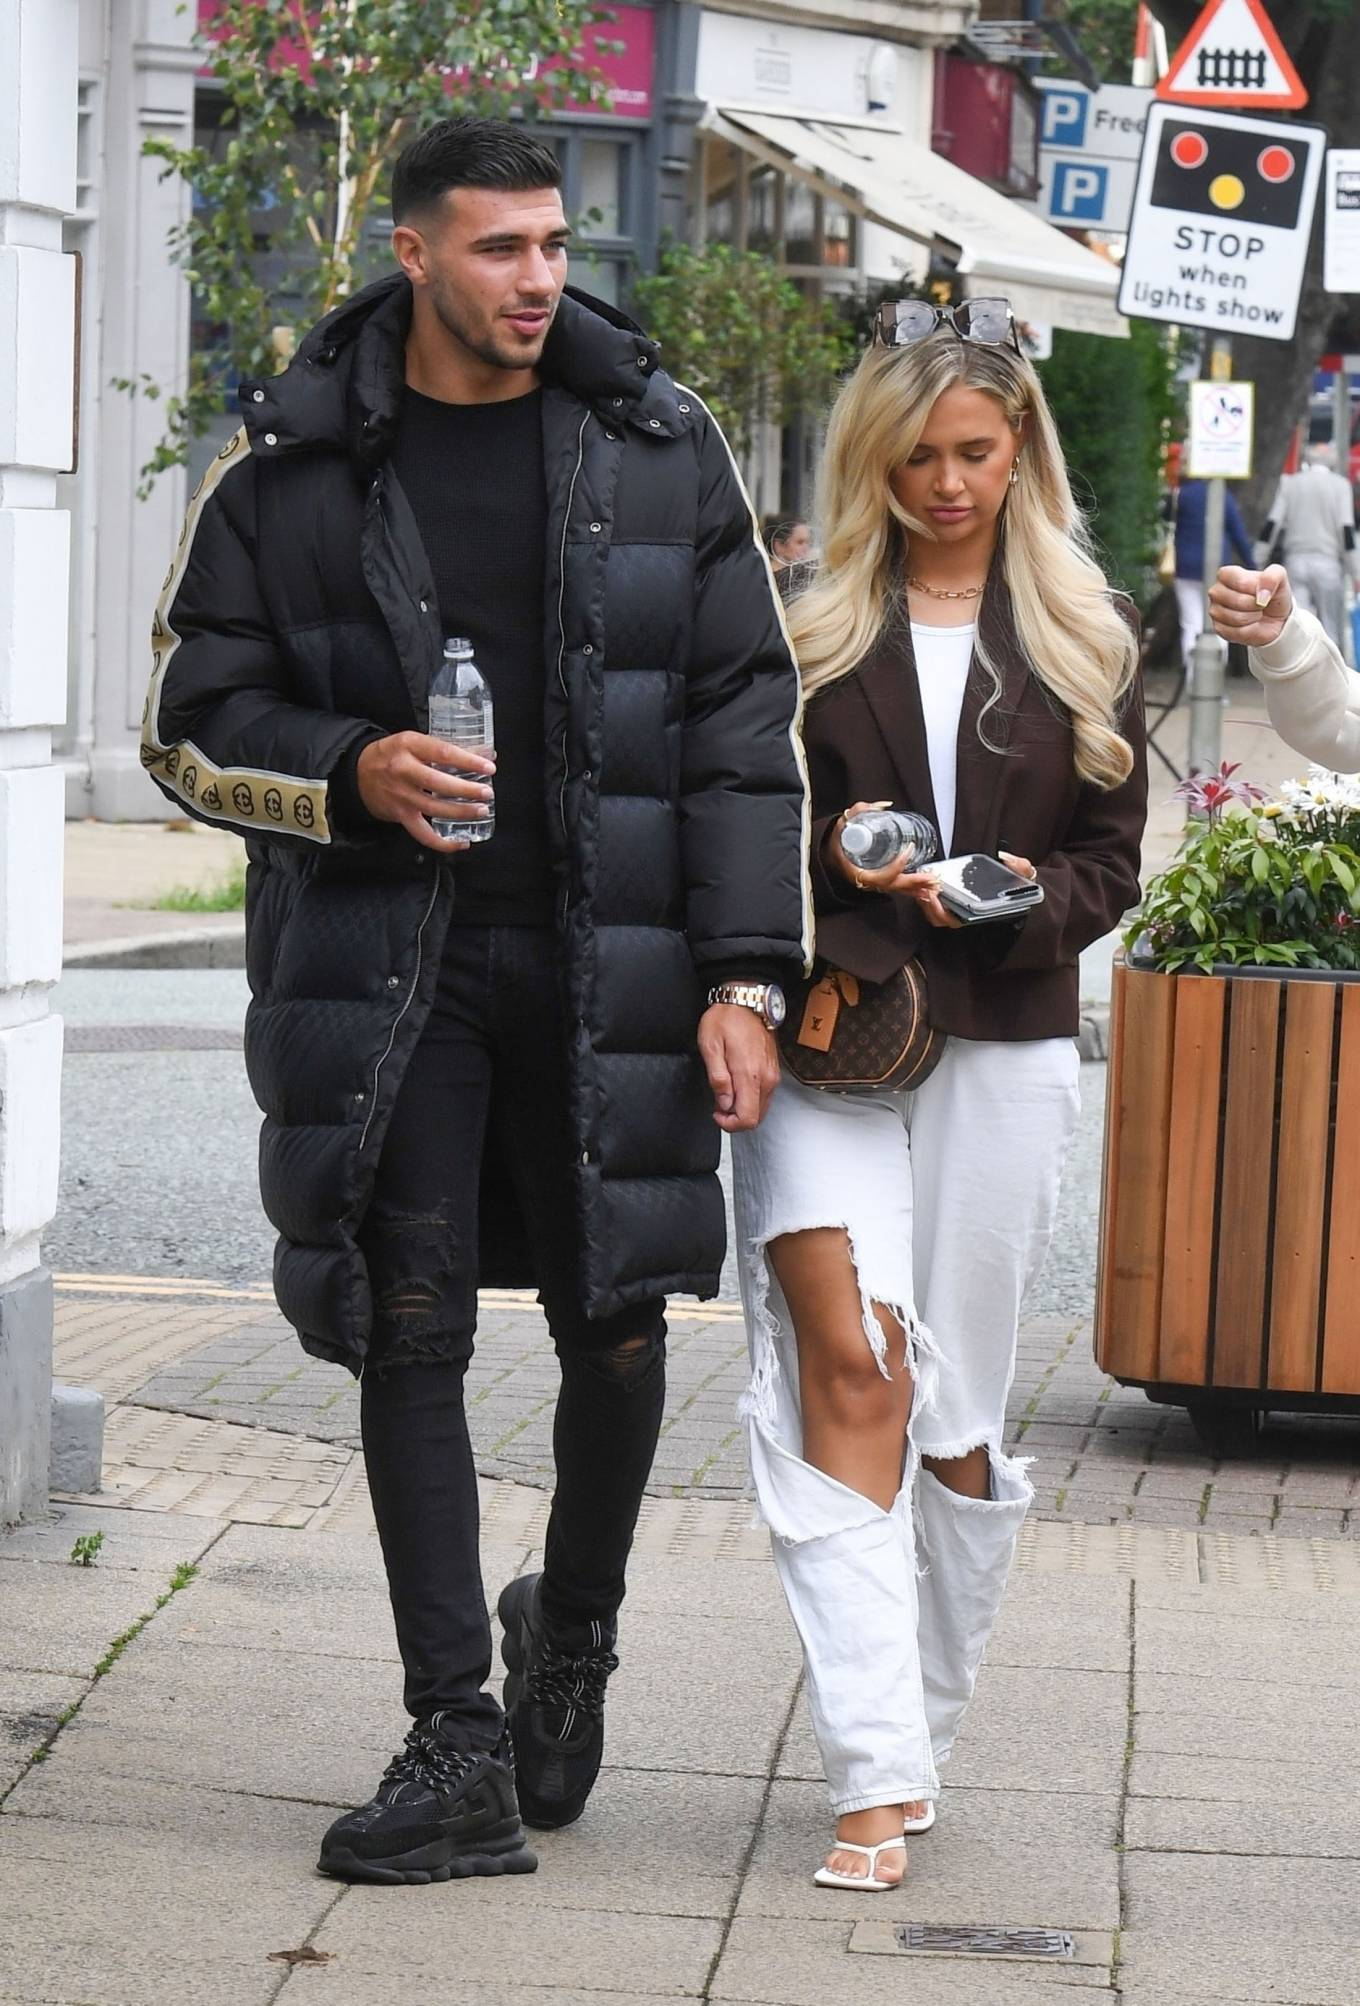 Molly-Mae Hague 2020 : Molly-Mae Hague and Tommy Fury – Seen while out in Cheshire -21